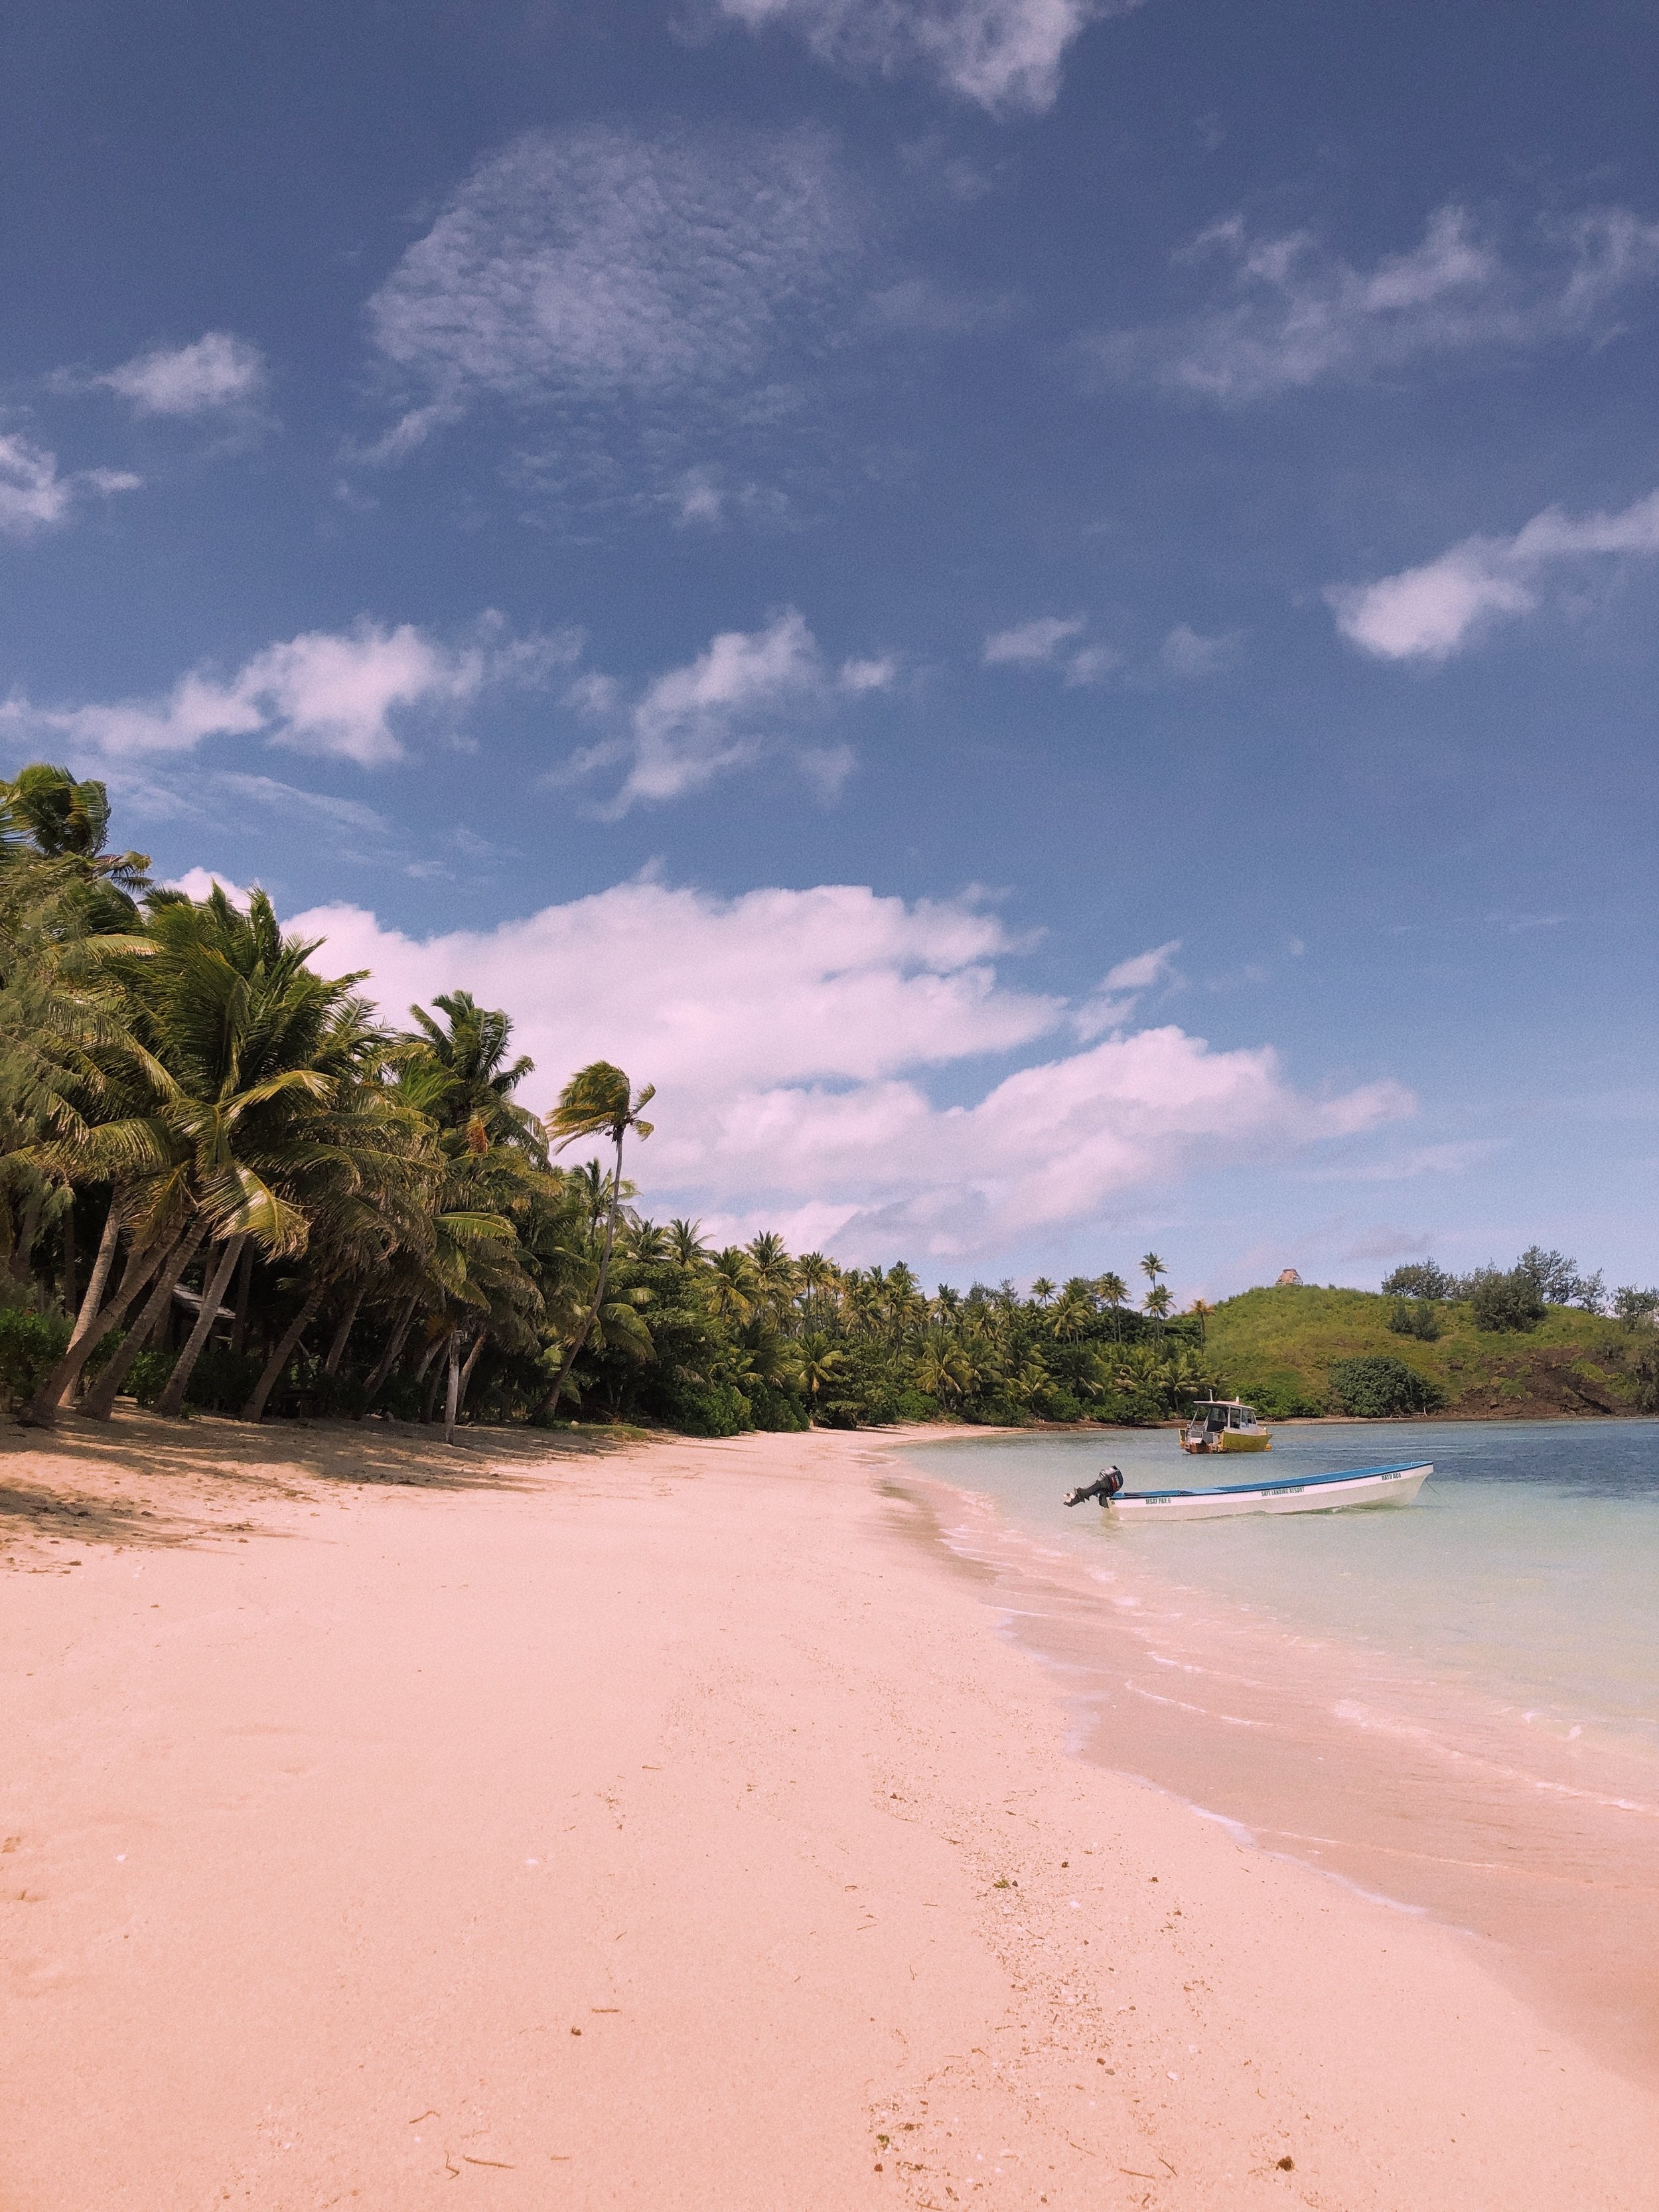 - A truly beautiful part of the world with pristine white sand, clean beaches and turquoise sea that we were lucky enough to spend 7 days on, experiencing the real Fijian way of life from the living spaces, food and daily activities.